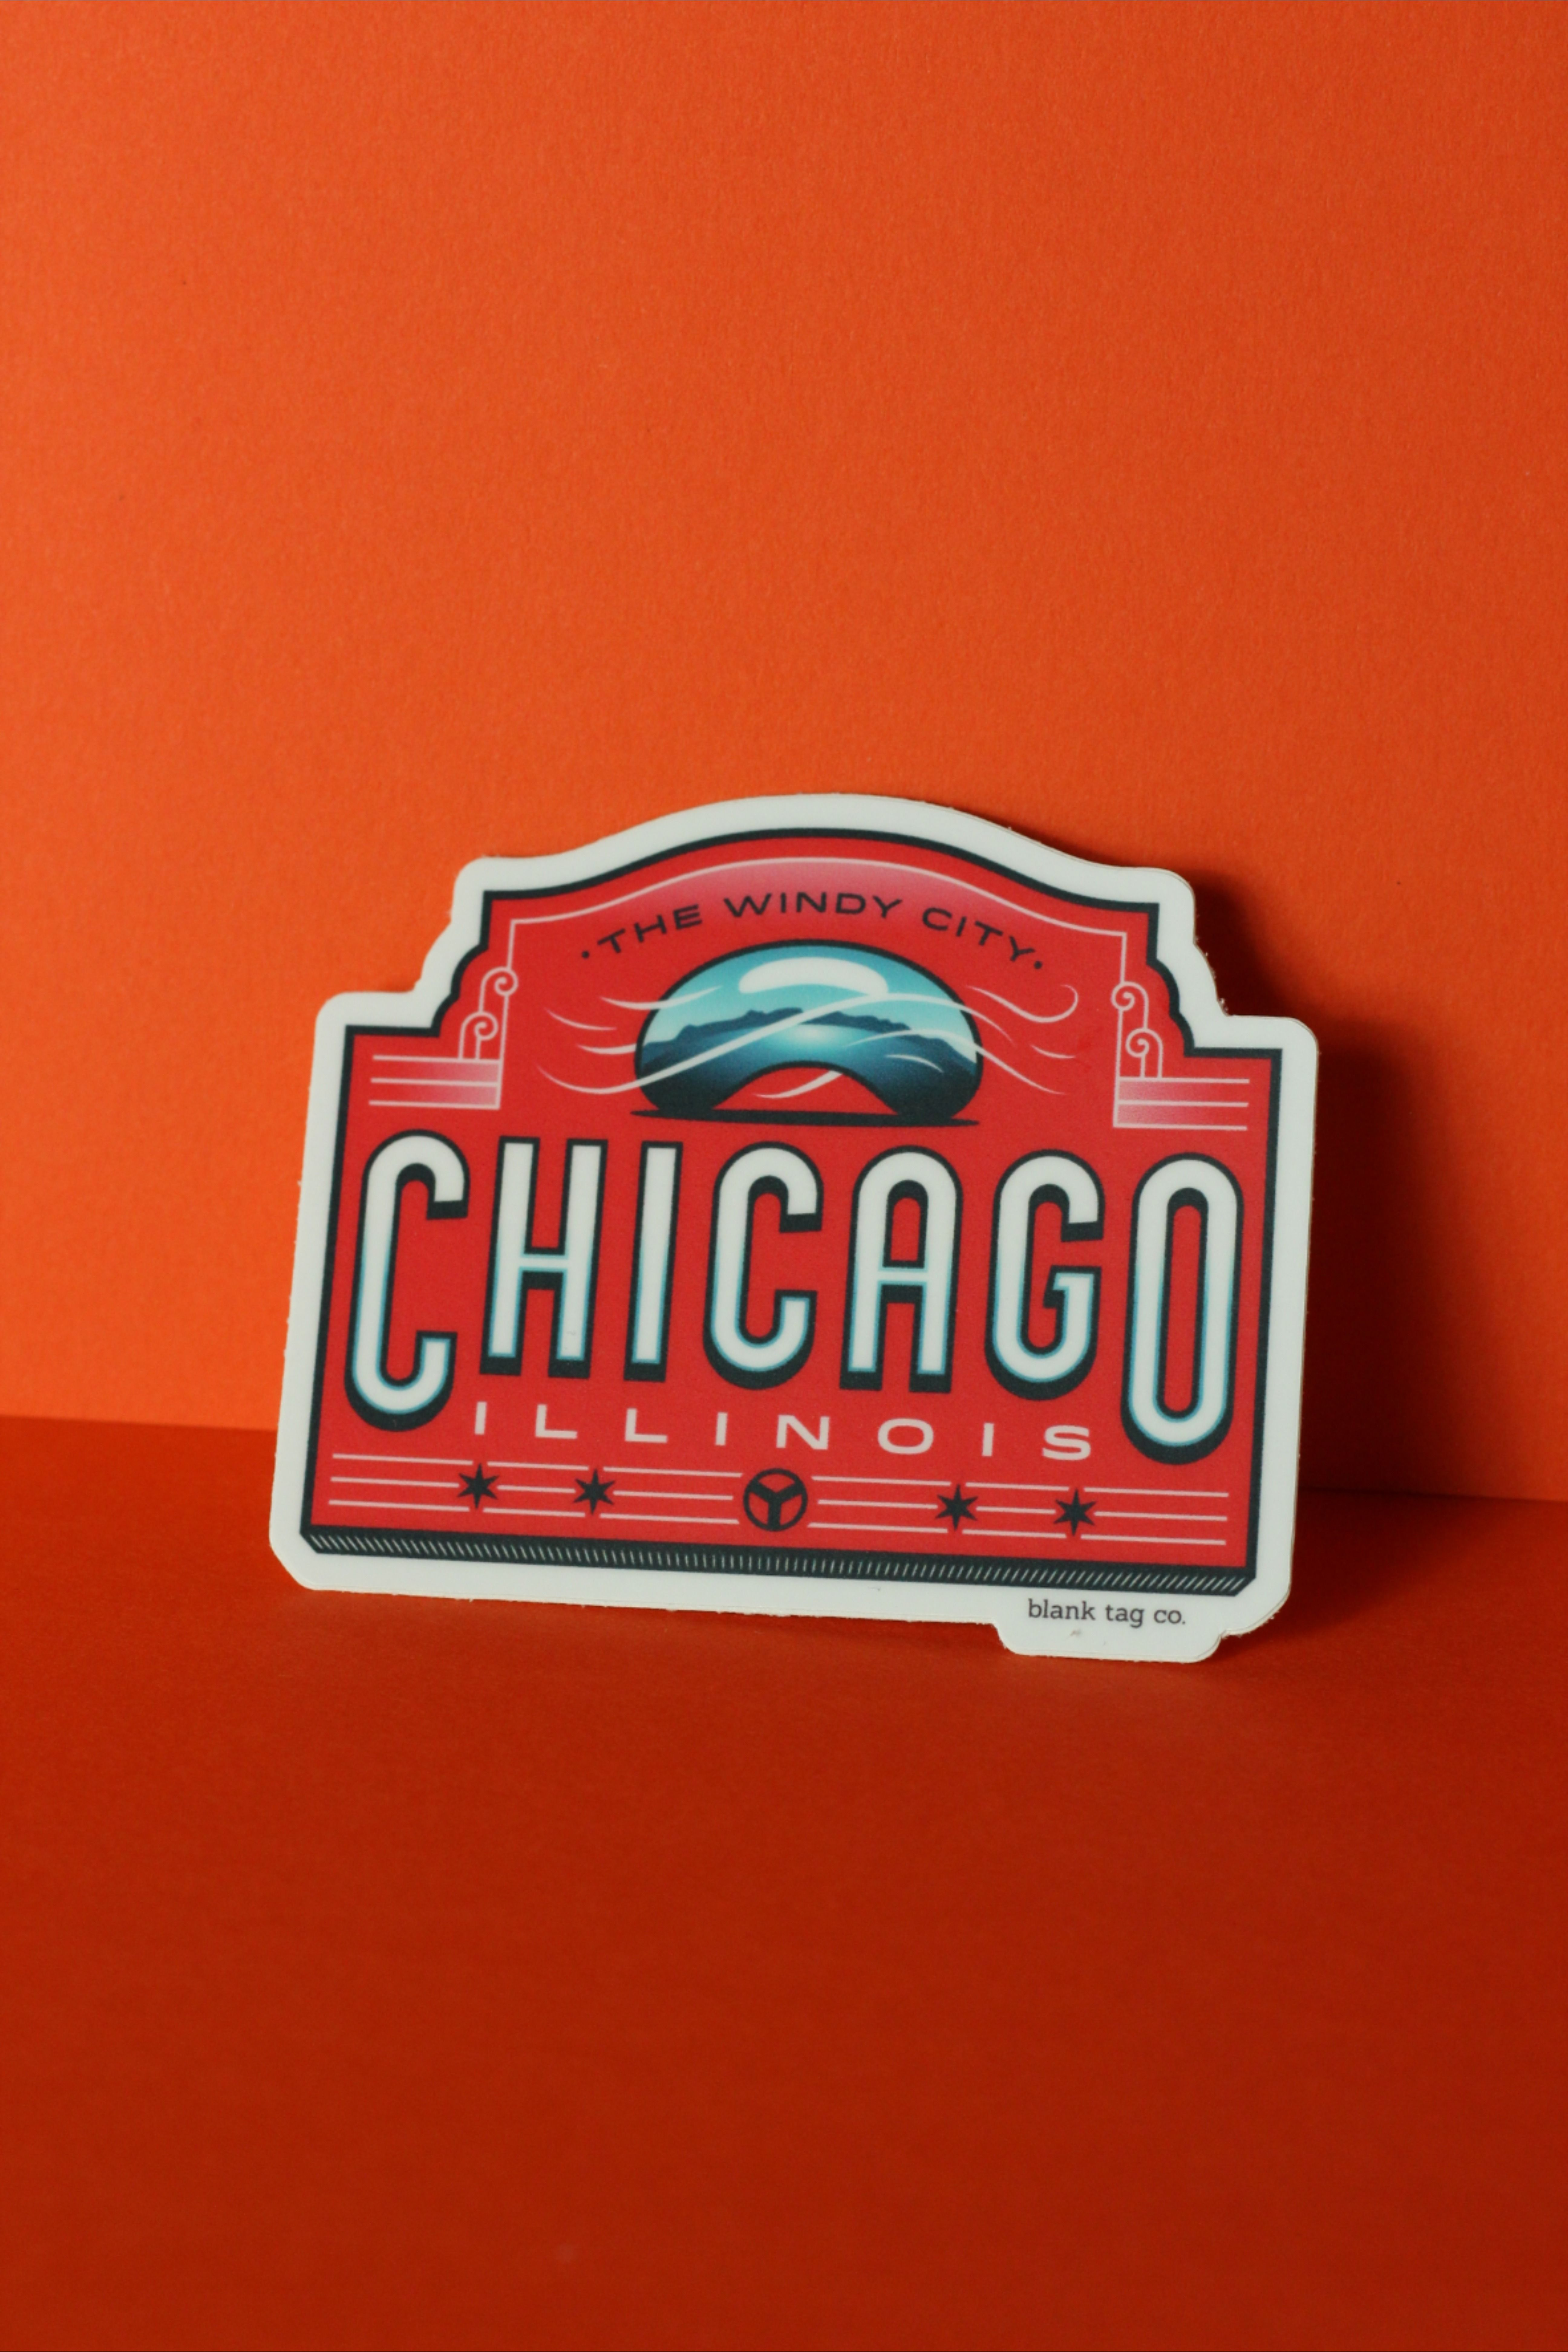 The Chicago City Badge Sticker Cute Stickers Travel Stickers Stickers [ 7776 x 5184 Pixel ]